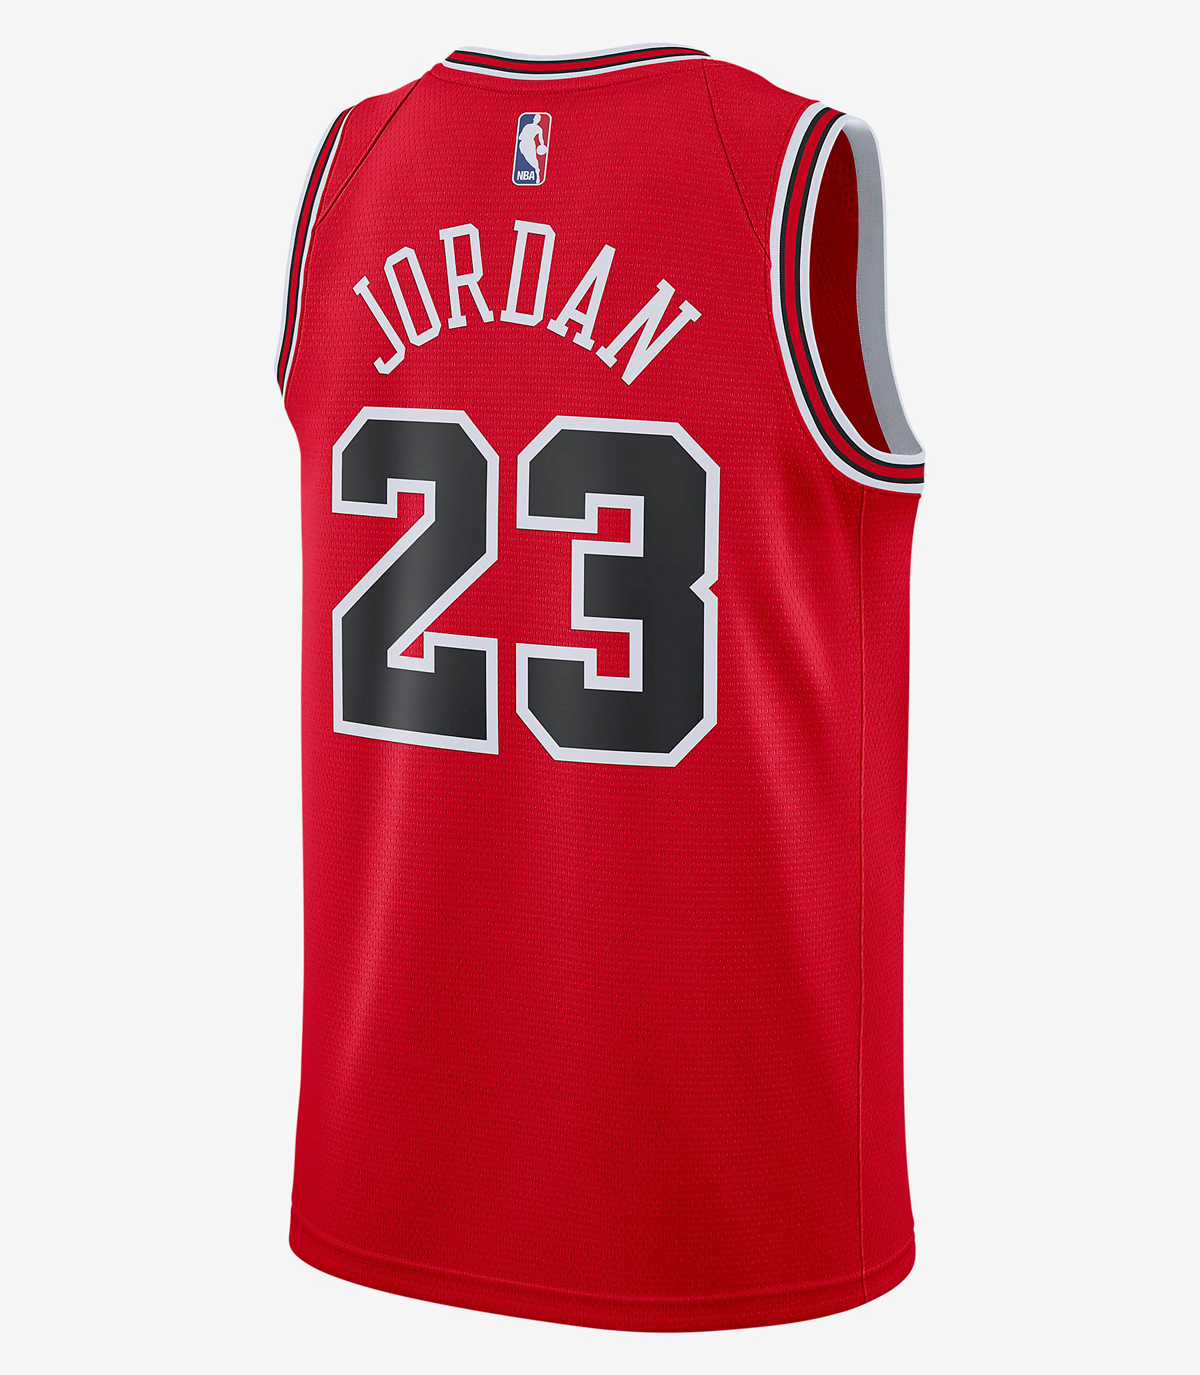 michael-jordan-chicago-bulls-icon-swingman-nba-connected-jersey-2